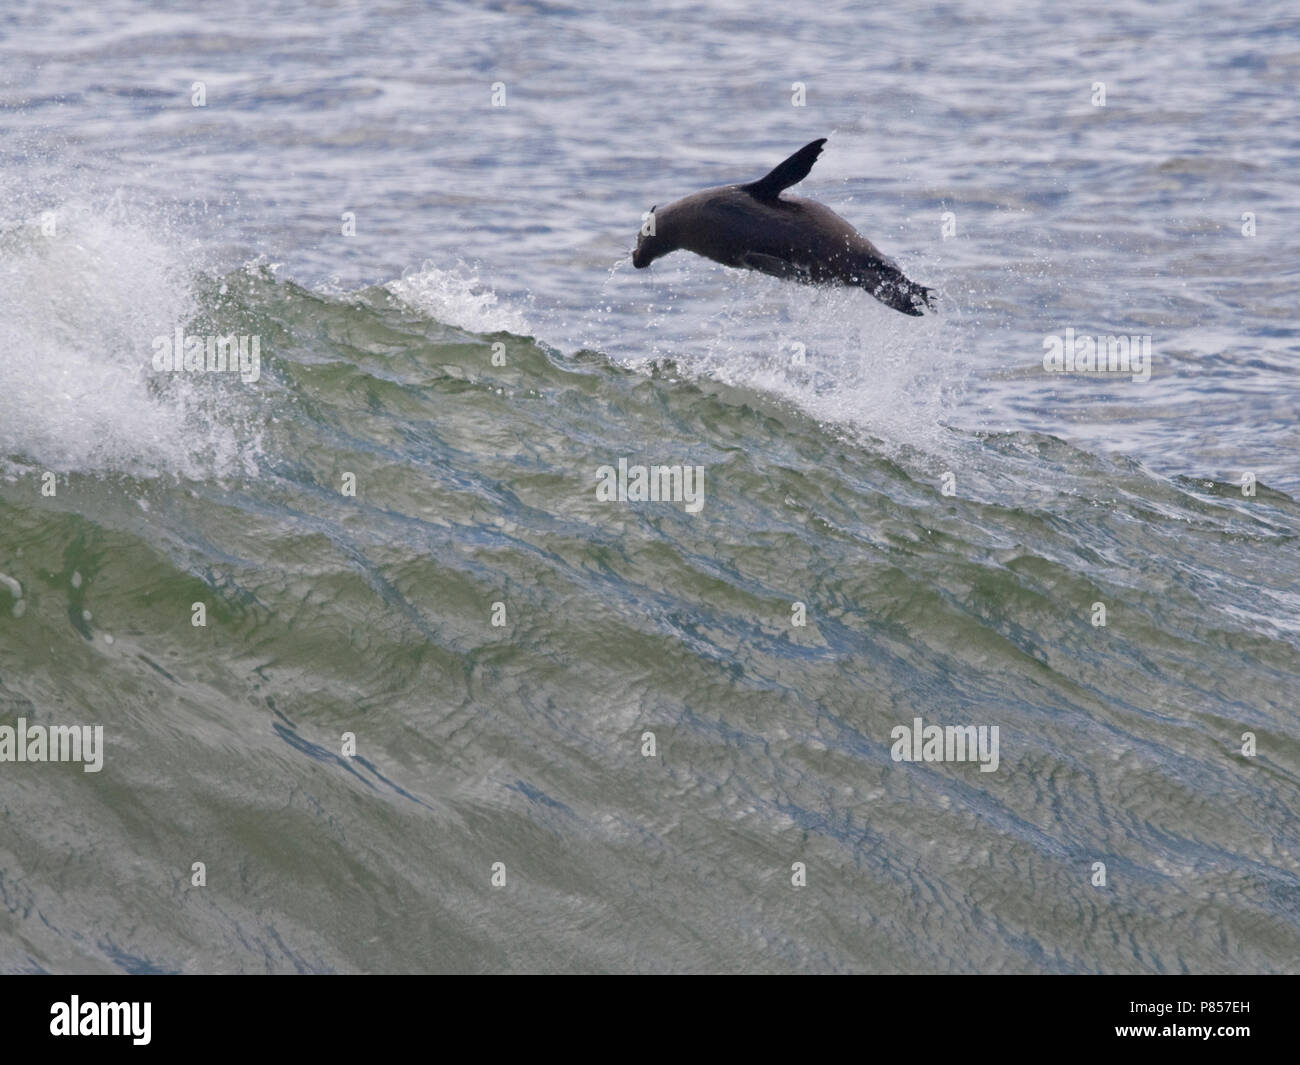 Kaapse pelsrob uit zee springend, Cape Fur Seal jumping out of the sea - Stock Image